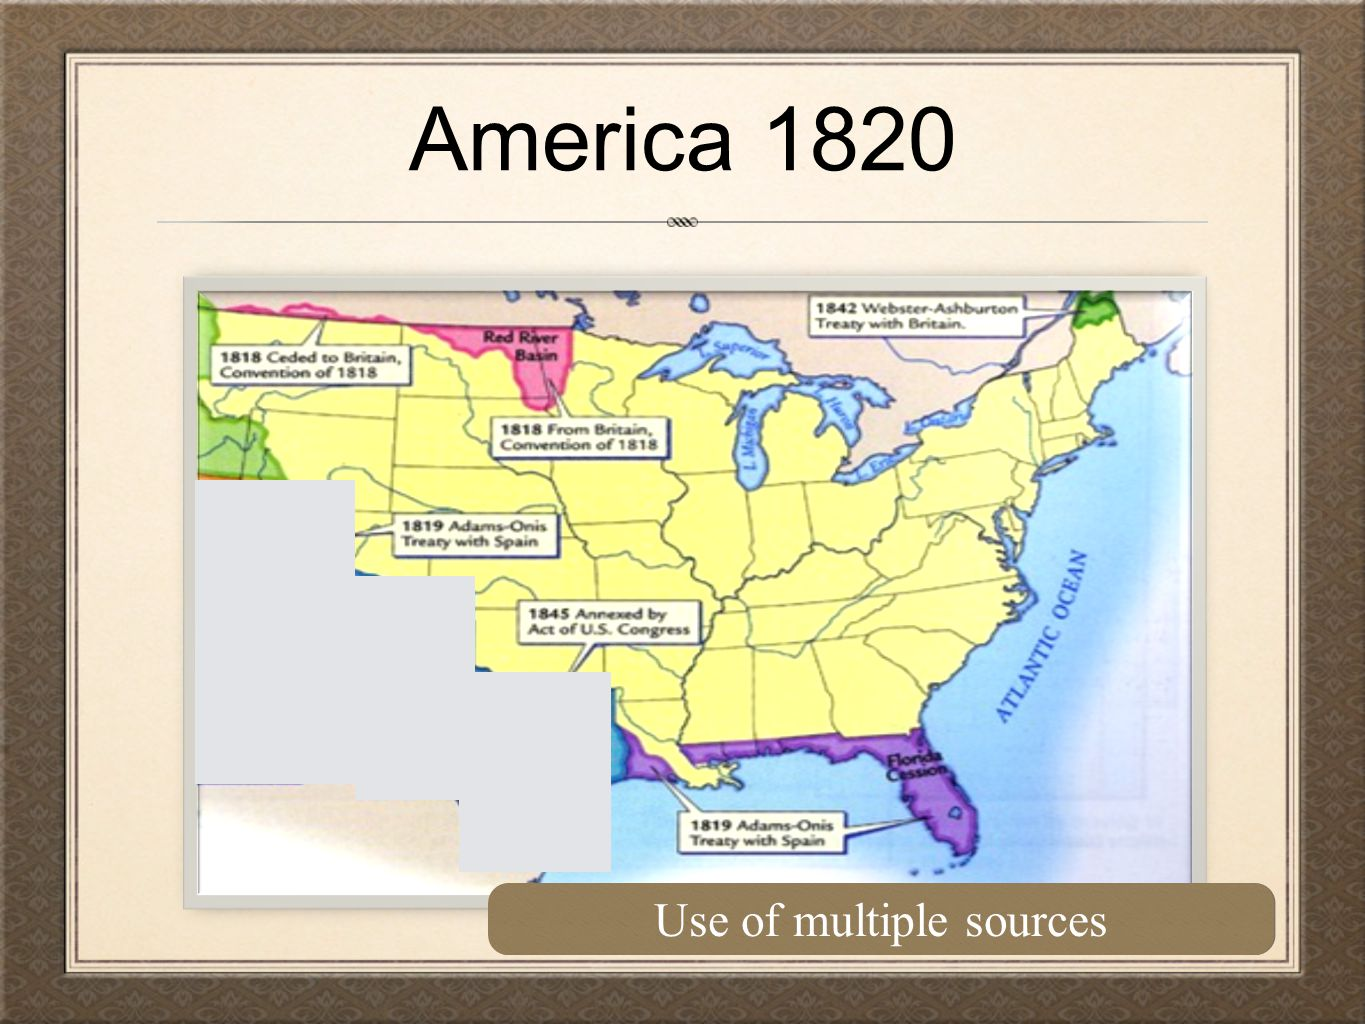 America 1820 Use of multiple sources